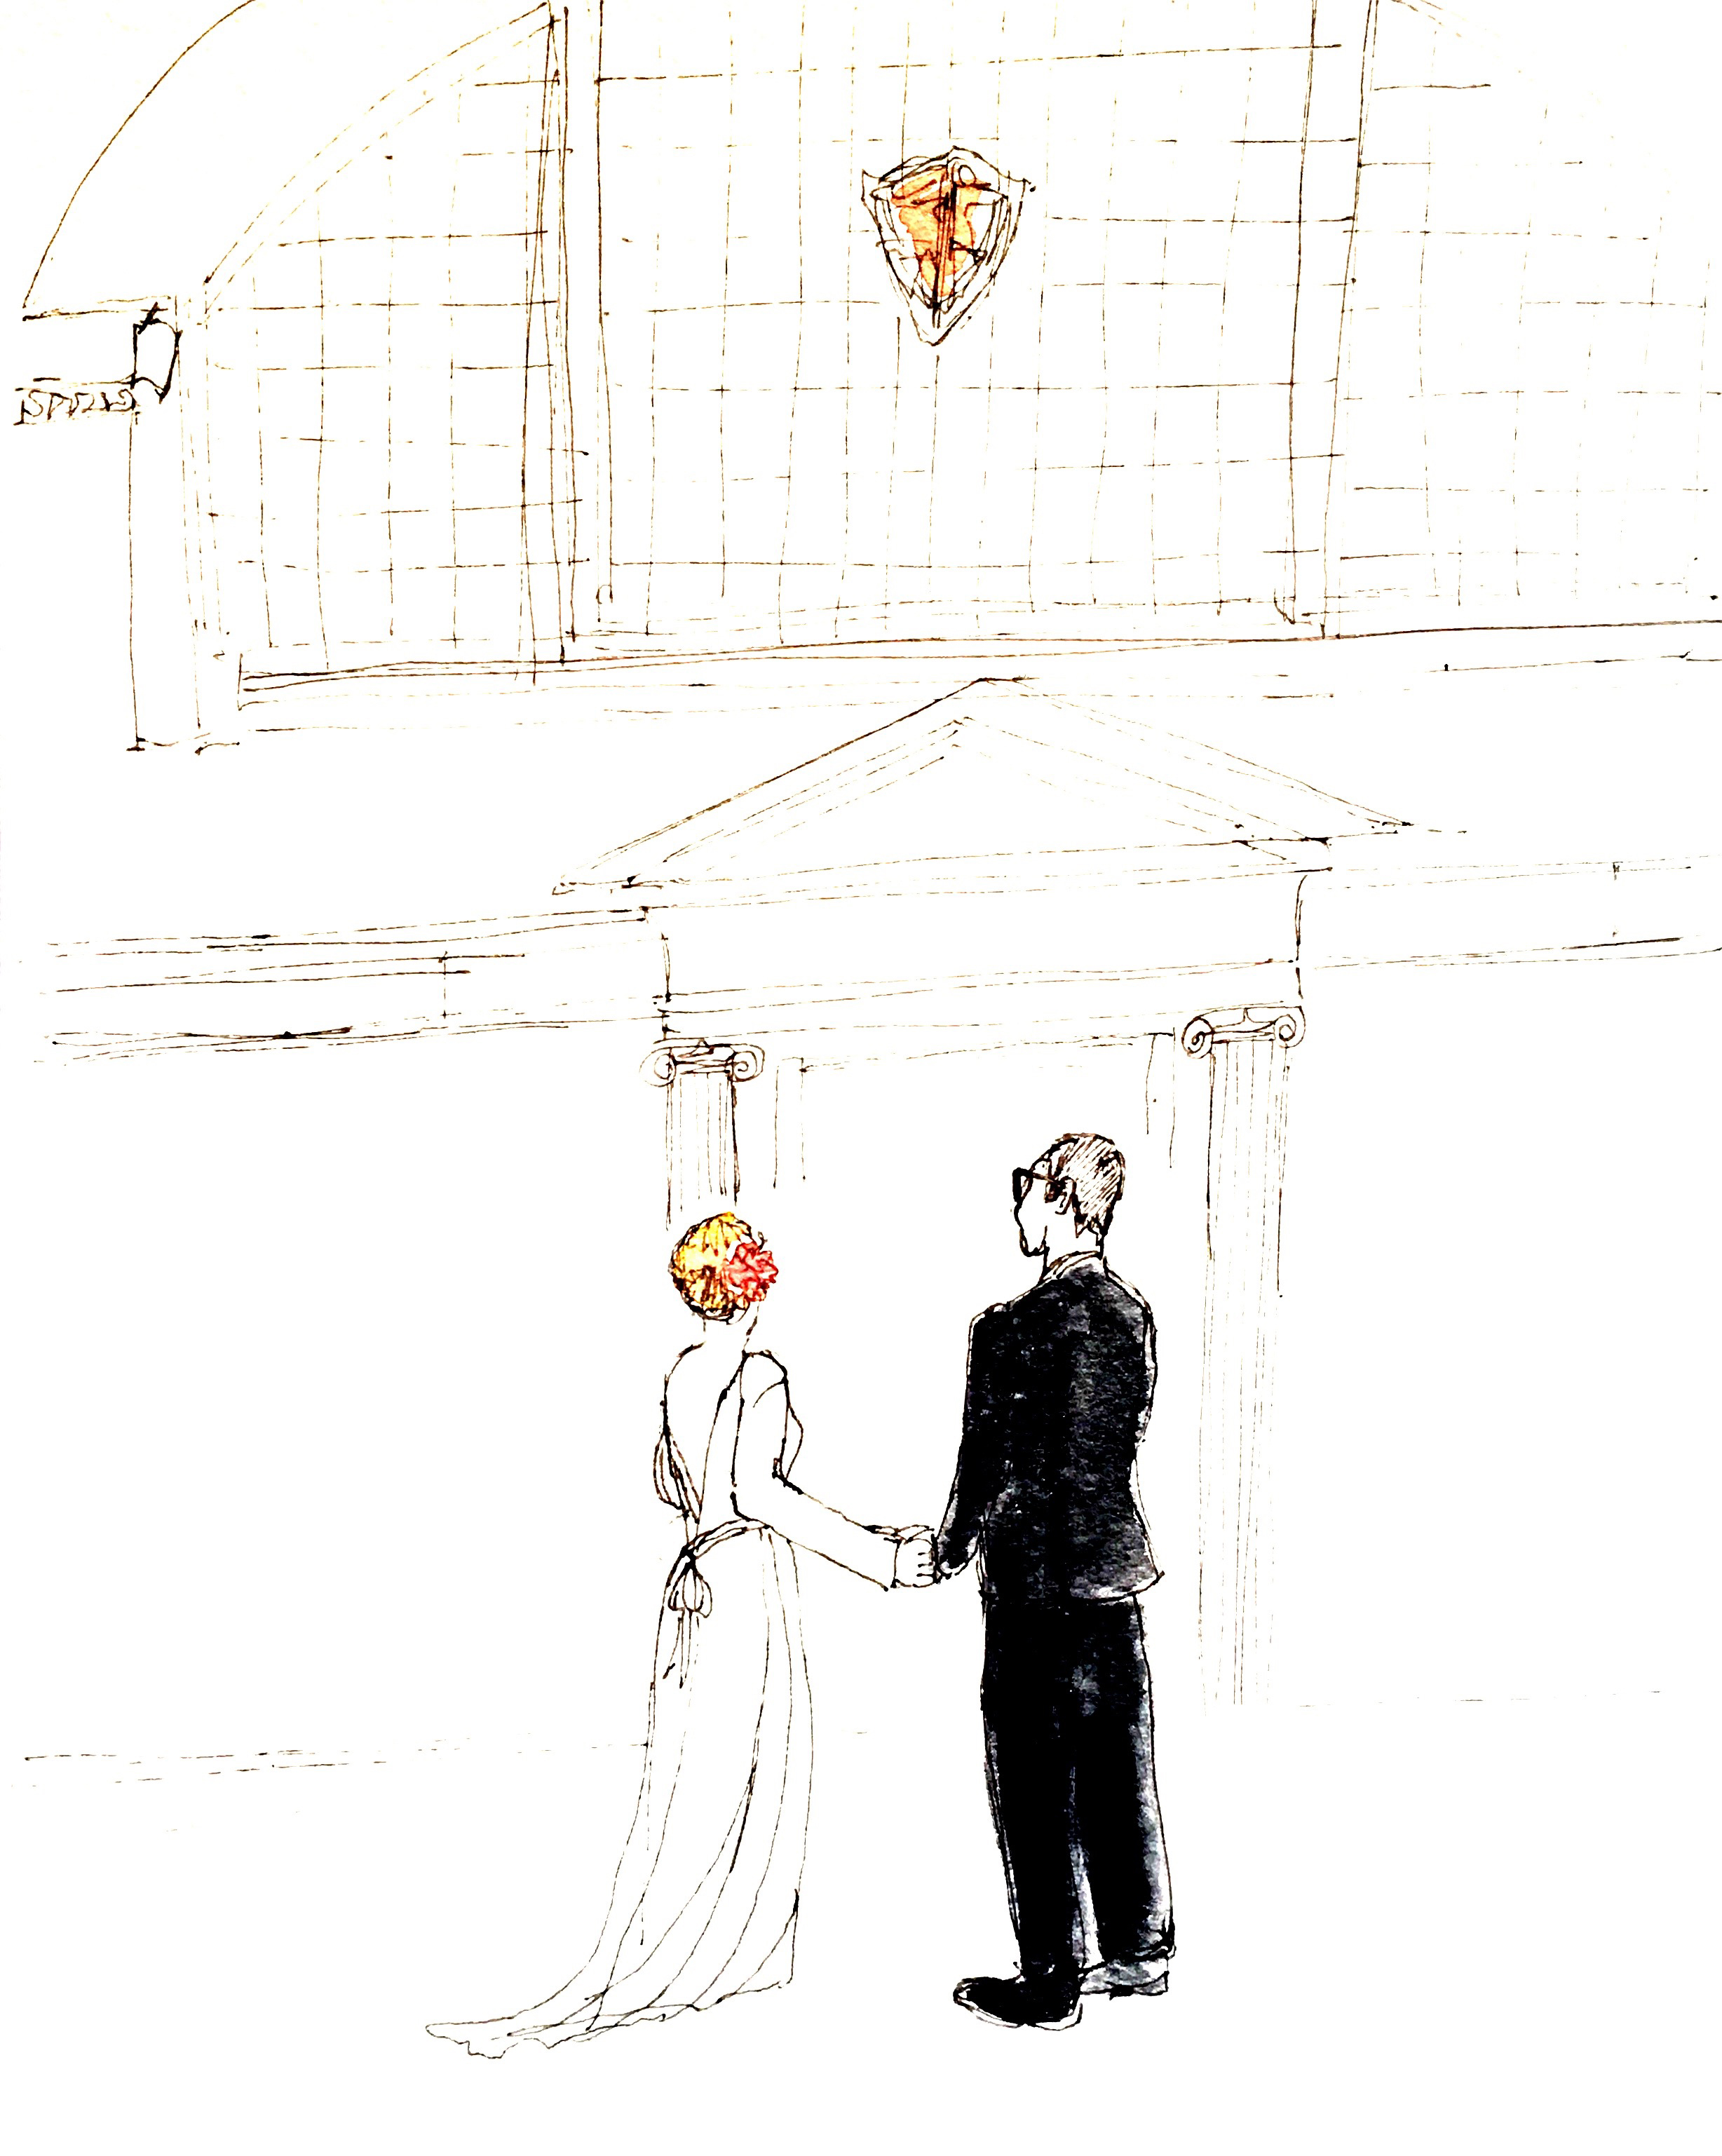 House of Love Illustration Live Wedding Artist Illustrator 00003.jpg